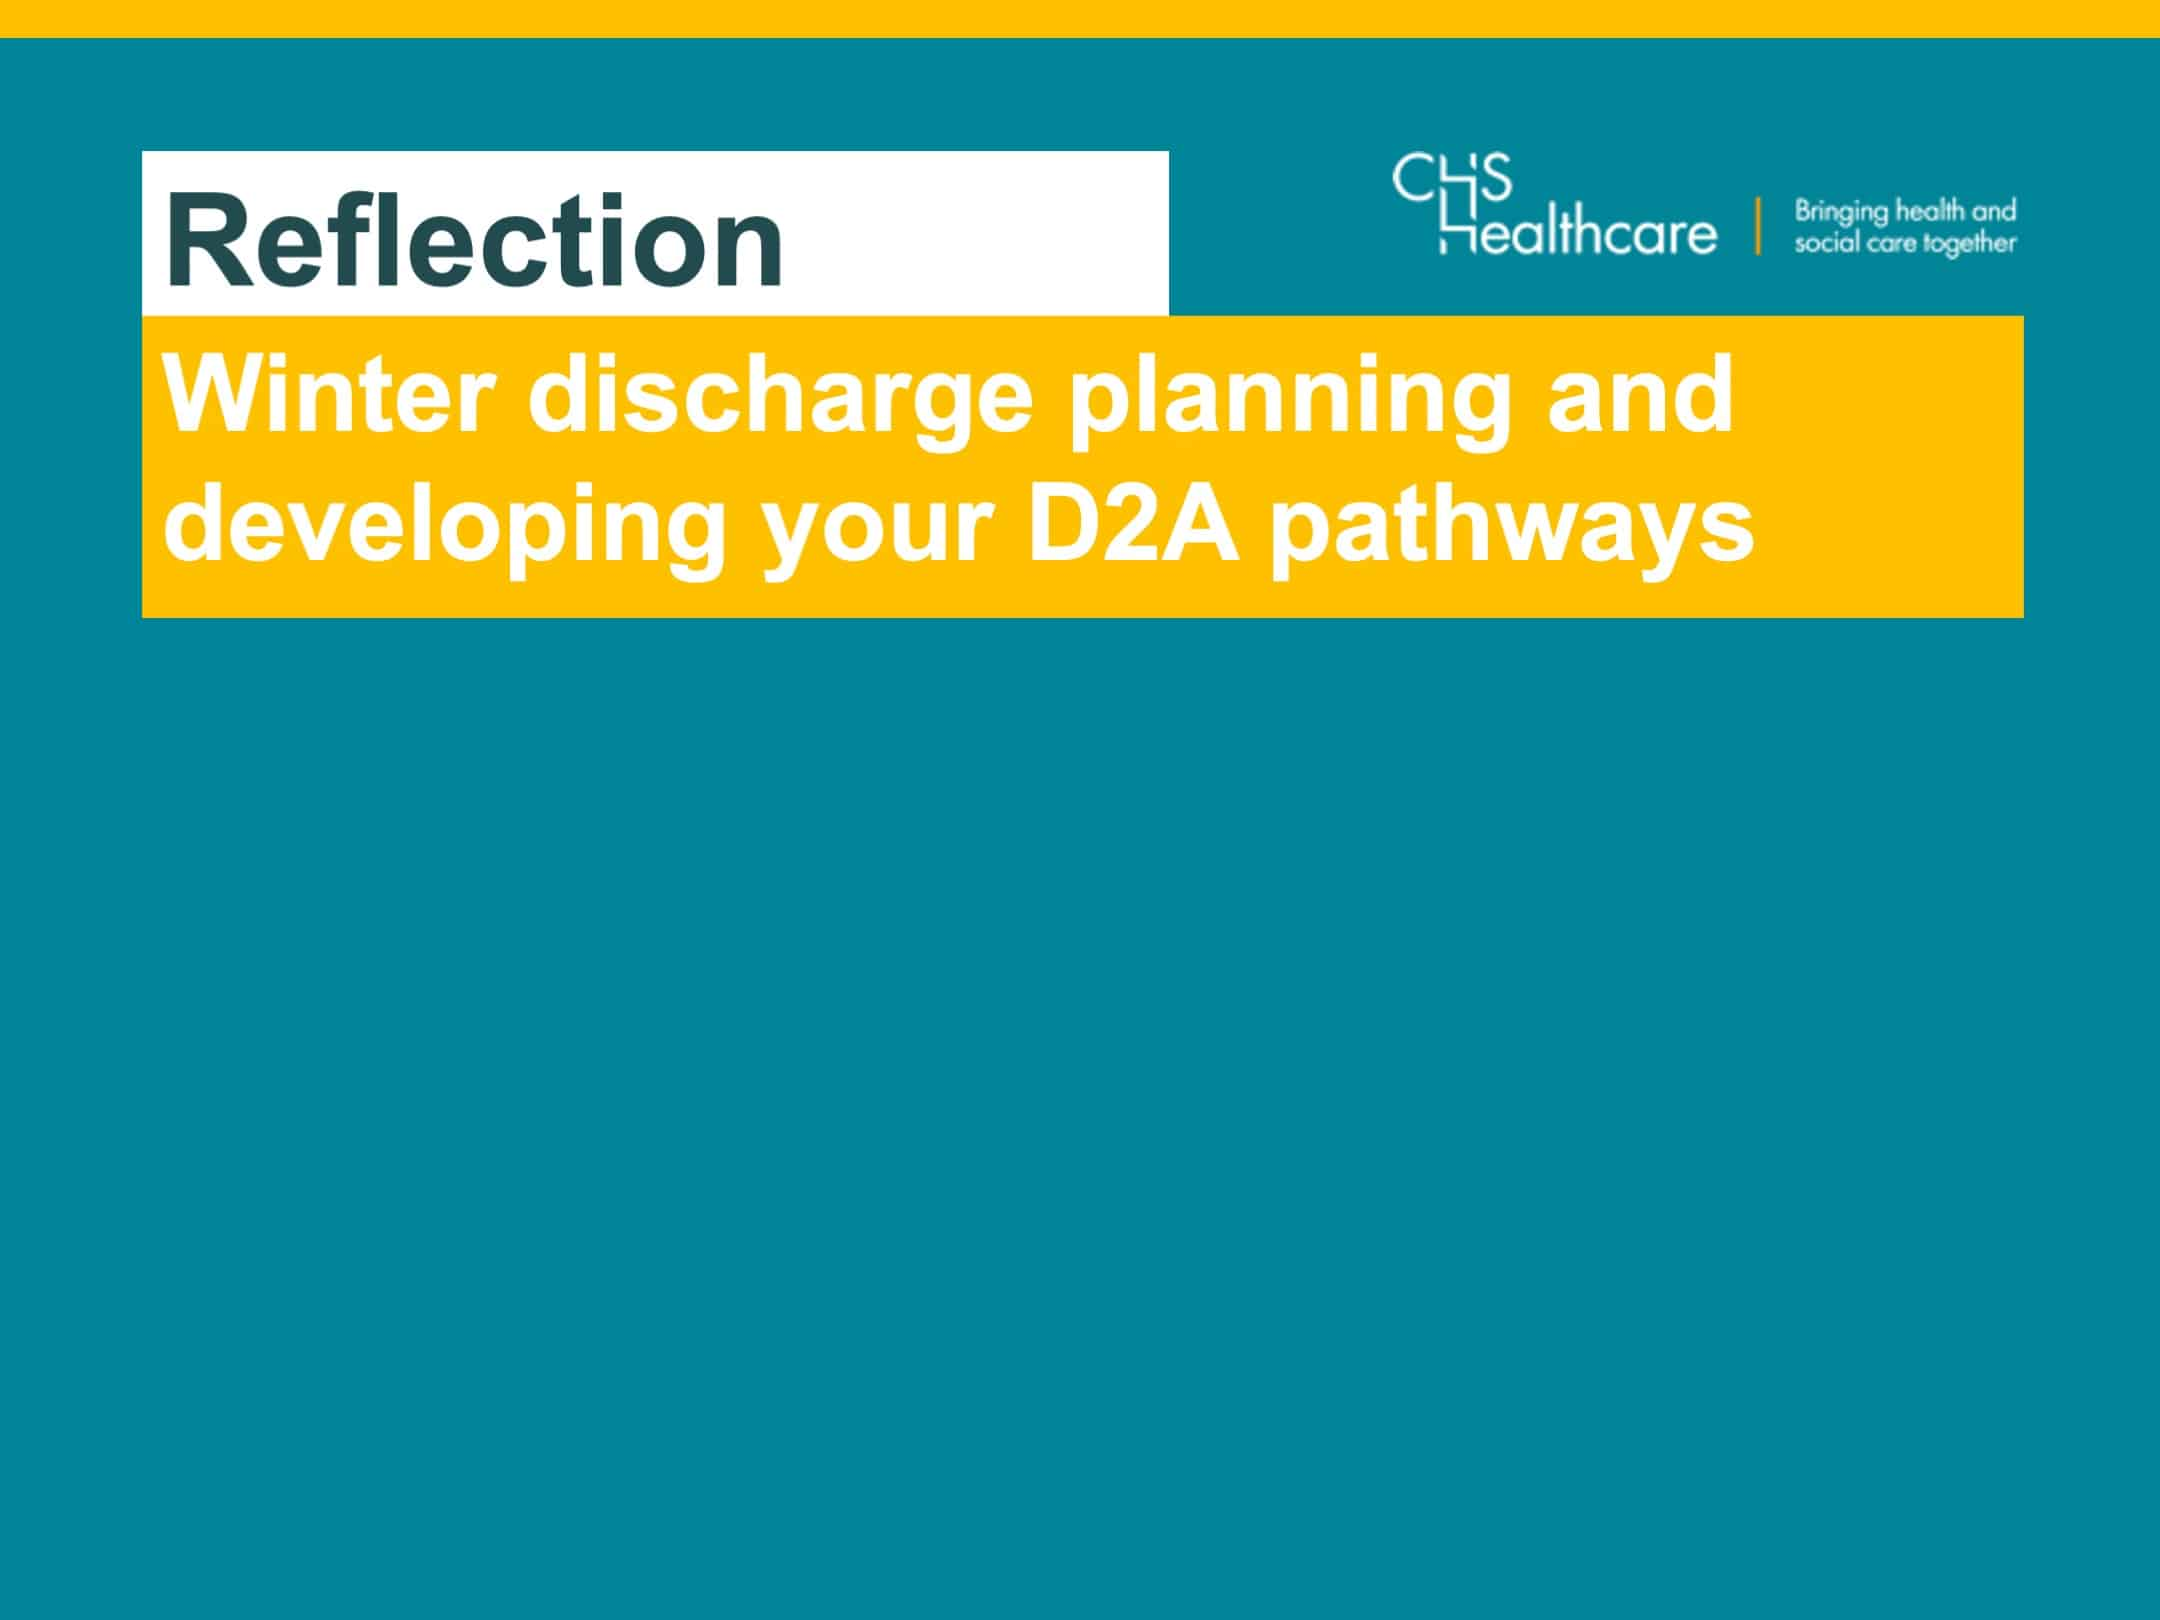 Winter discharge planning and developing your D2A pathways